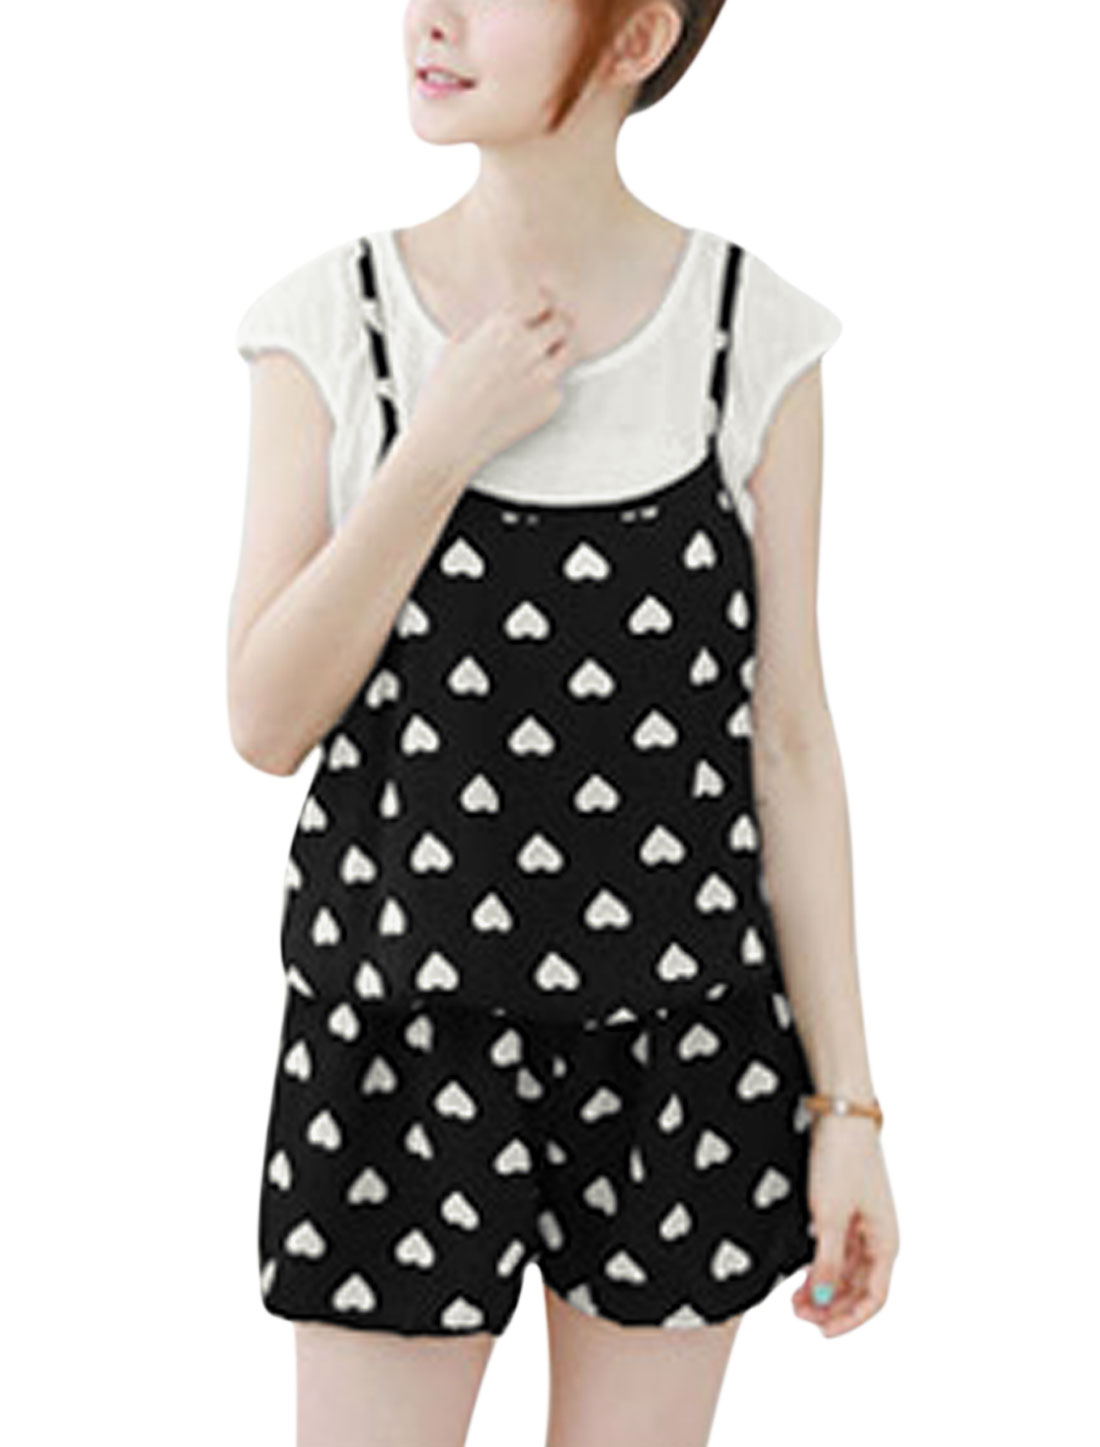 Ladies Round Neck Tops w Hearts Print Spaghetti Strap Rompers Set Black XS